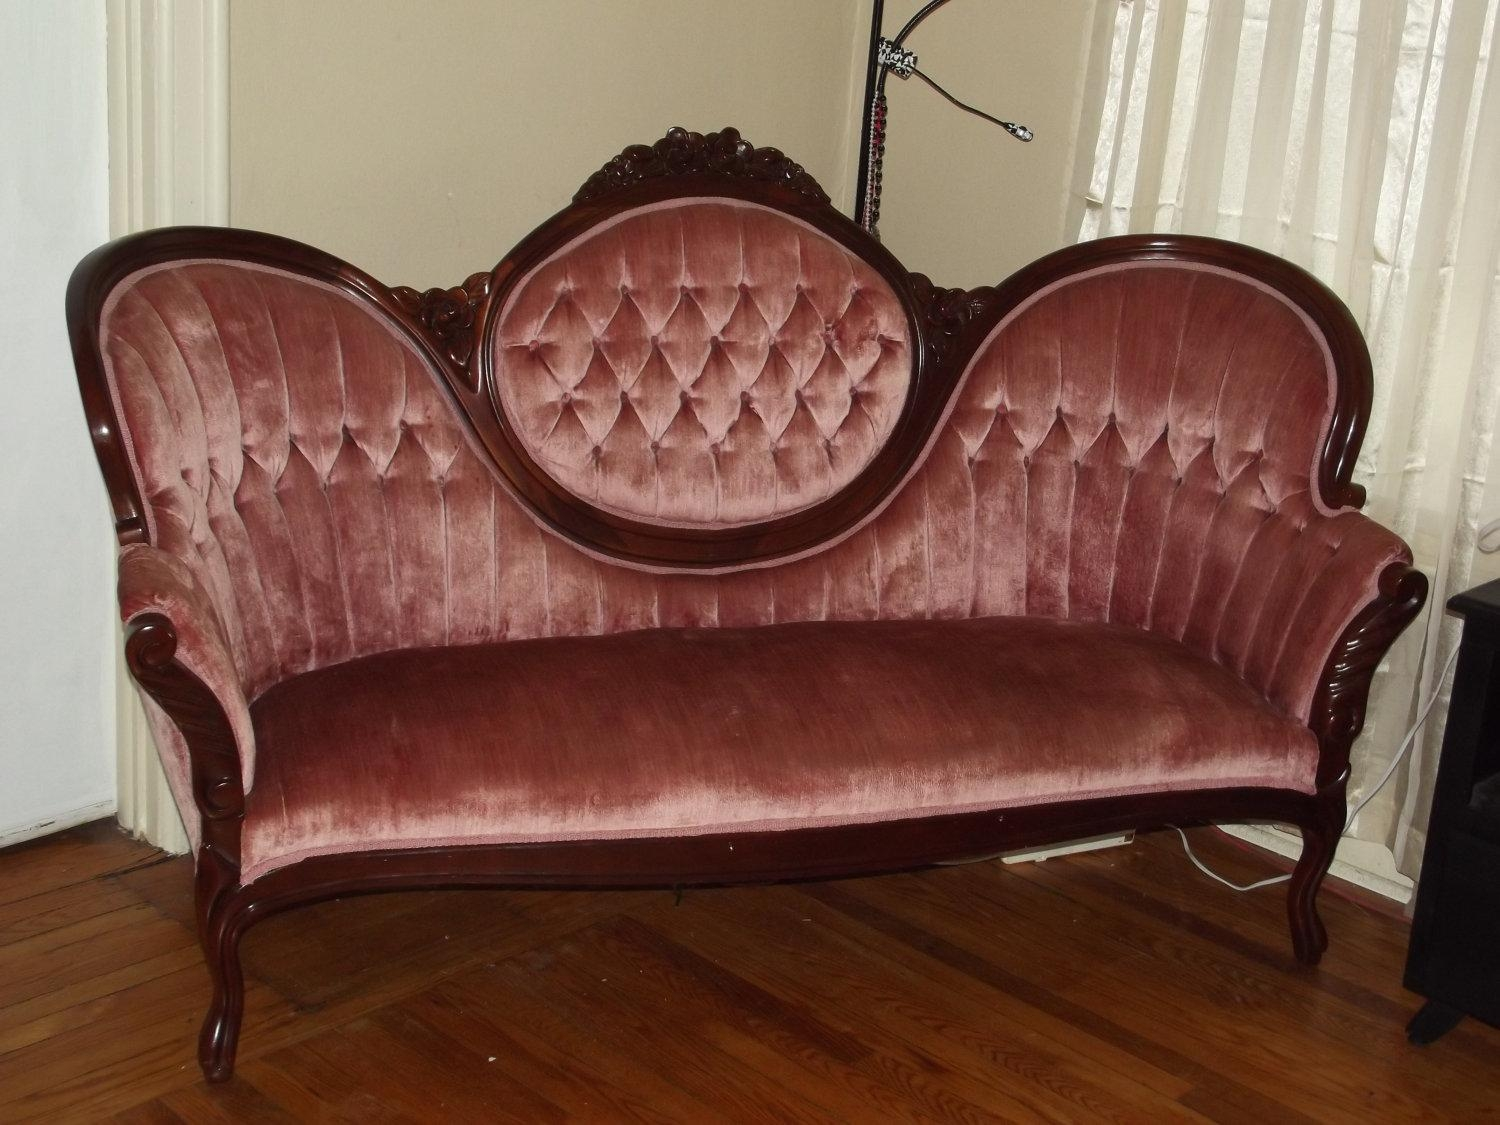 vintage sofa styles oned chesterfield sofa antique brown. Black Bedroom Furniture Sets. Home Design Ideas